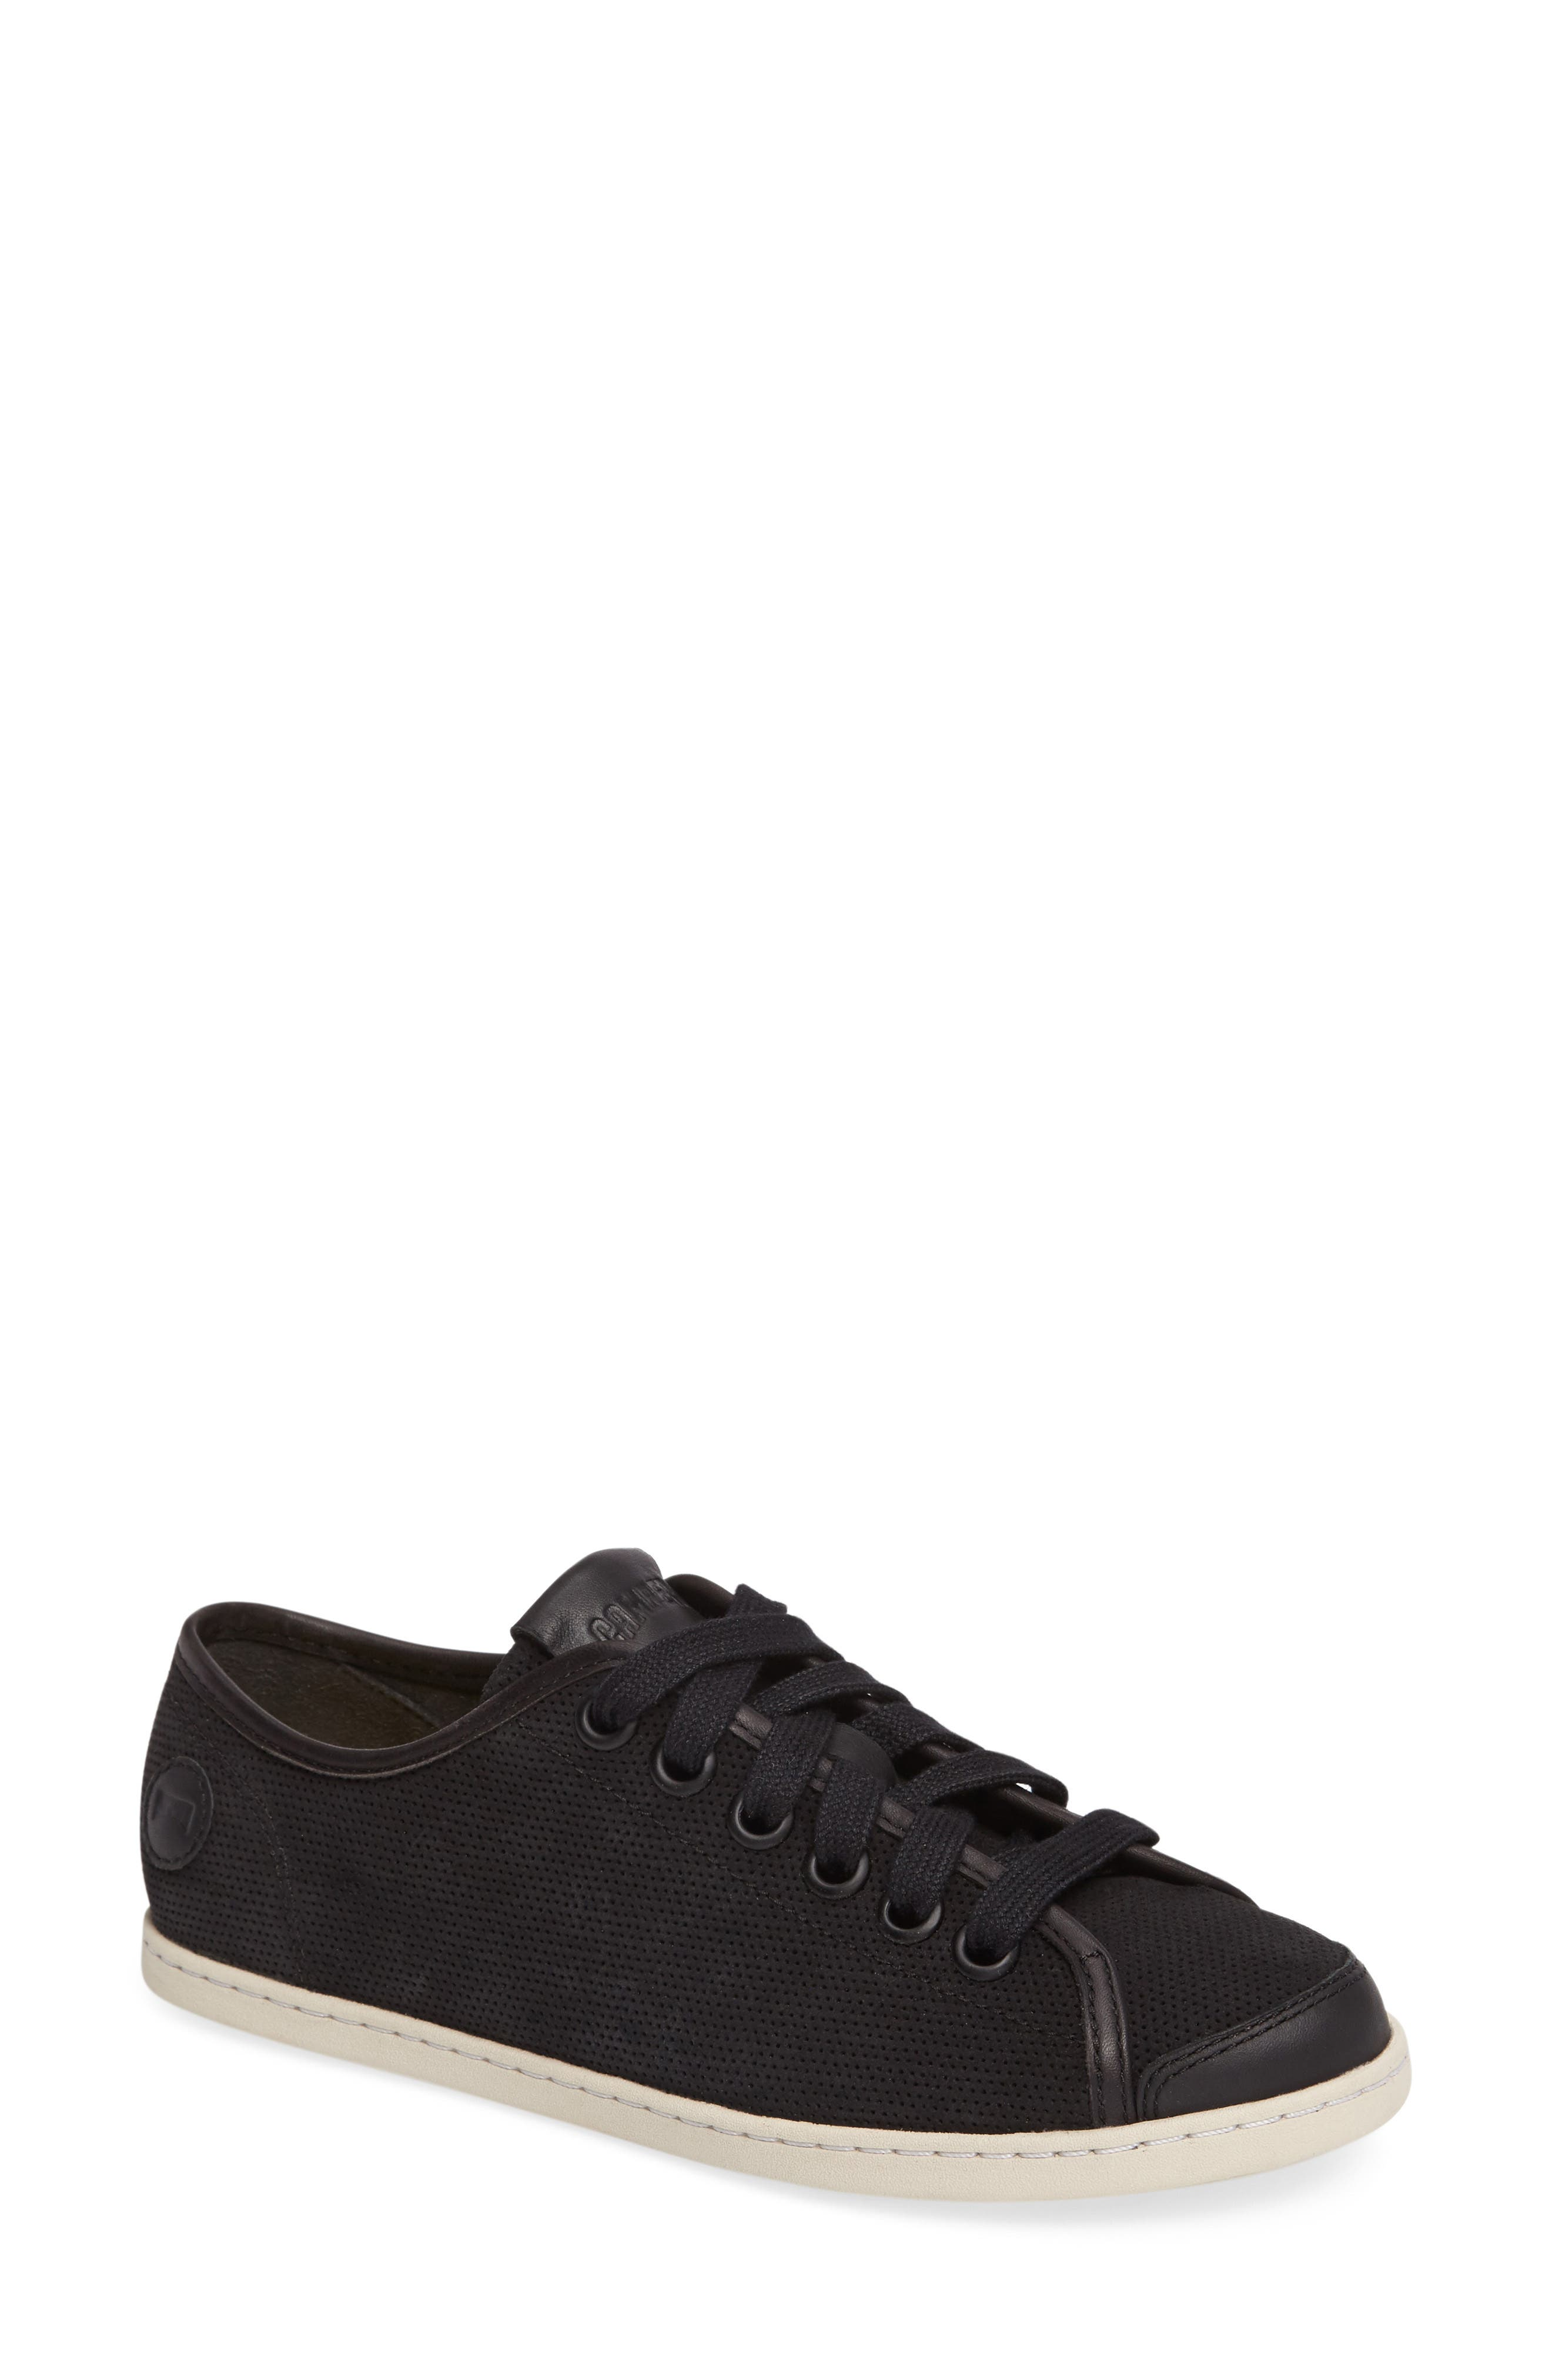 Main Image - Camper Uno Low Top Sneaker (Women)